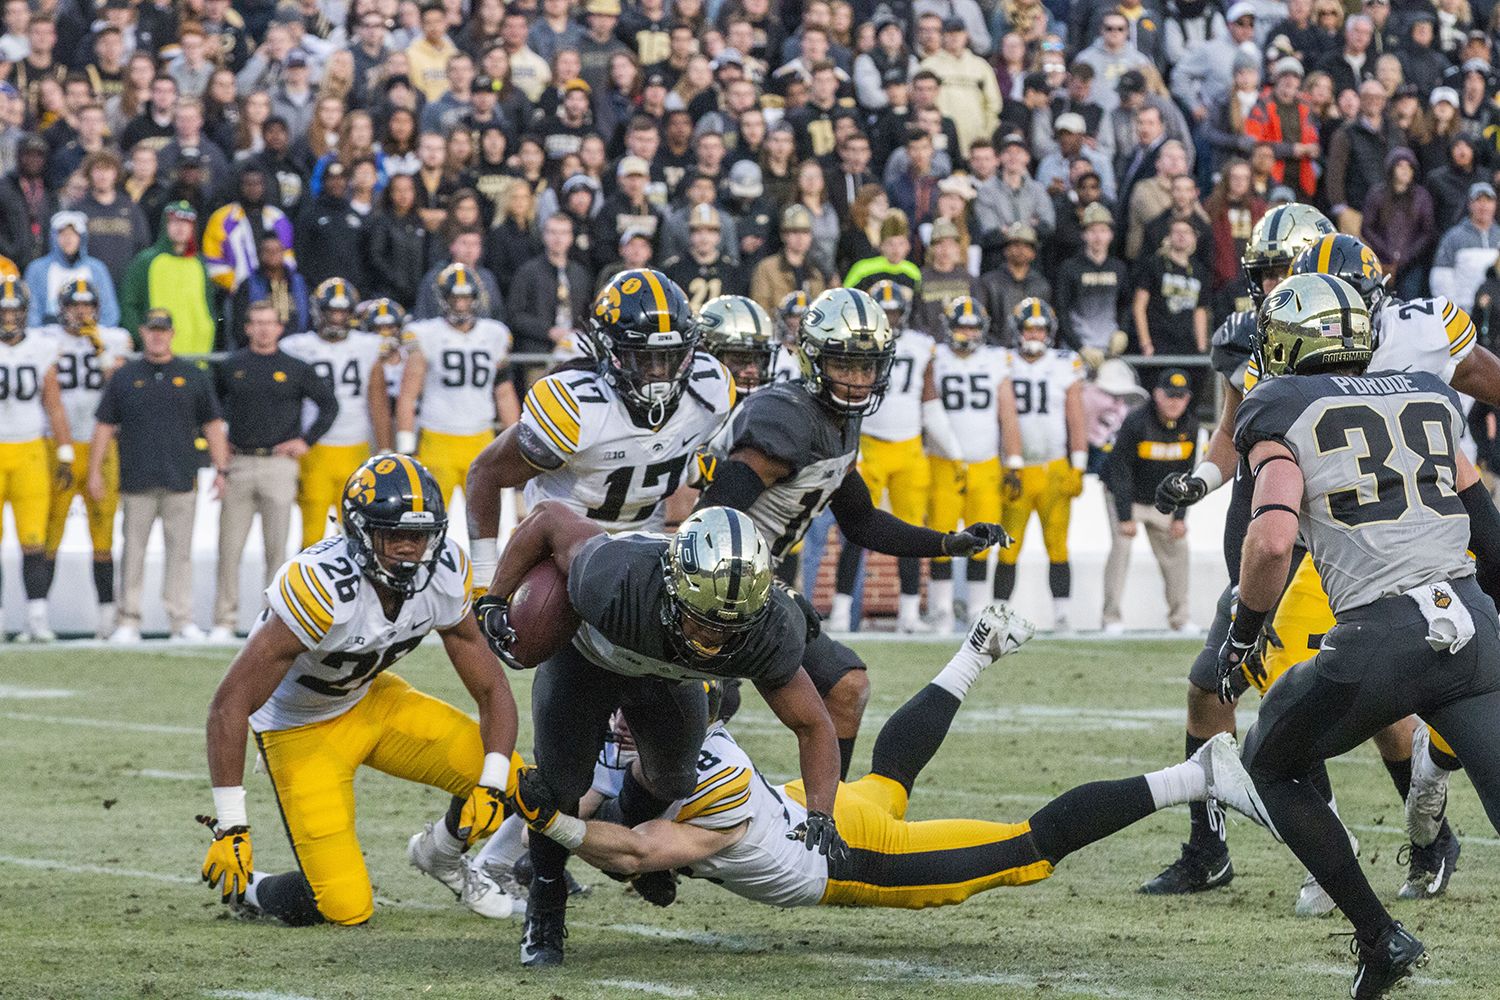 Purdue+wide+receiver+Rondale+Moore+runs+the+ball+during+the+Iowa%2FPurdue+game+at+Ross-Ade+Stadium+in+West+Lafayette%2C+Ind.+on+Saturday%2C+November+3%2C+2018.+The+Boilermakers+defeated+the+Hawkeyes+38-36.